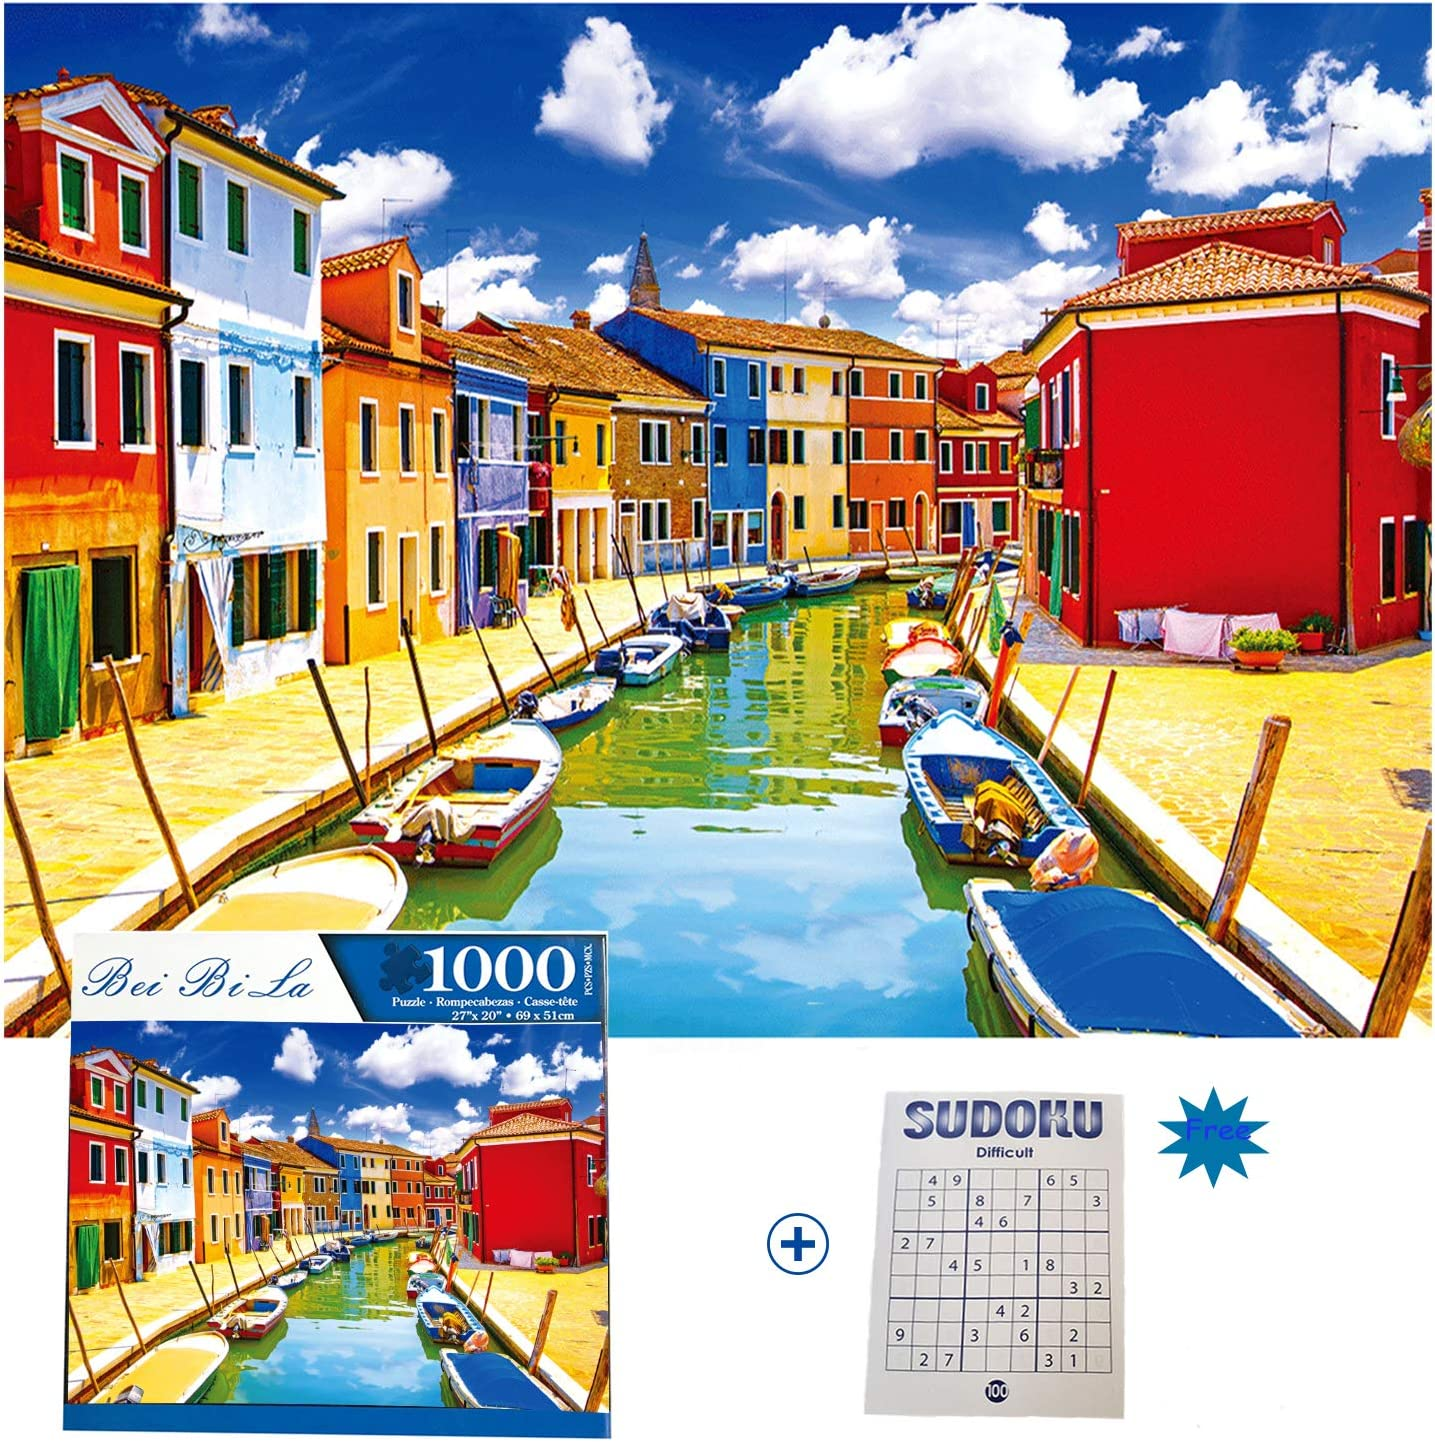 1000 Pieces Jigsaw Puzzles for Adults Kids Boys Girls,Wharf Town,Intellective Educational Decompression Gift Fun Interesting Family Parent Child Cooperative Game with 100 Pages Sudoku Books